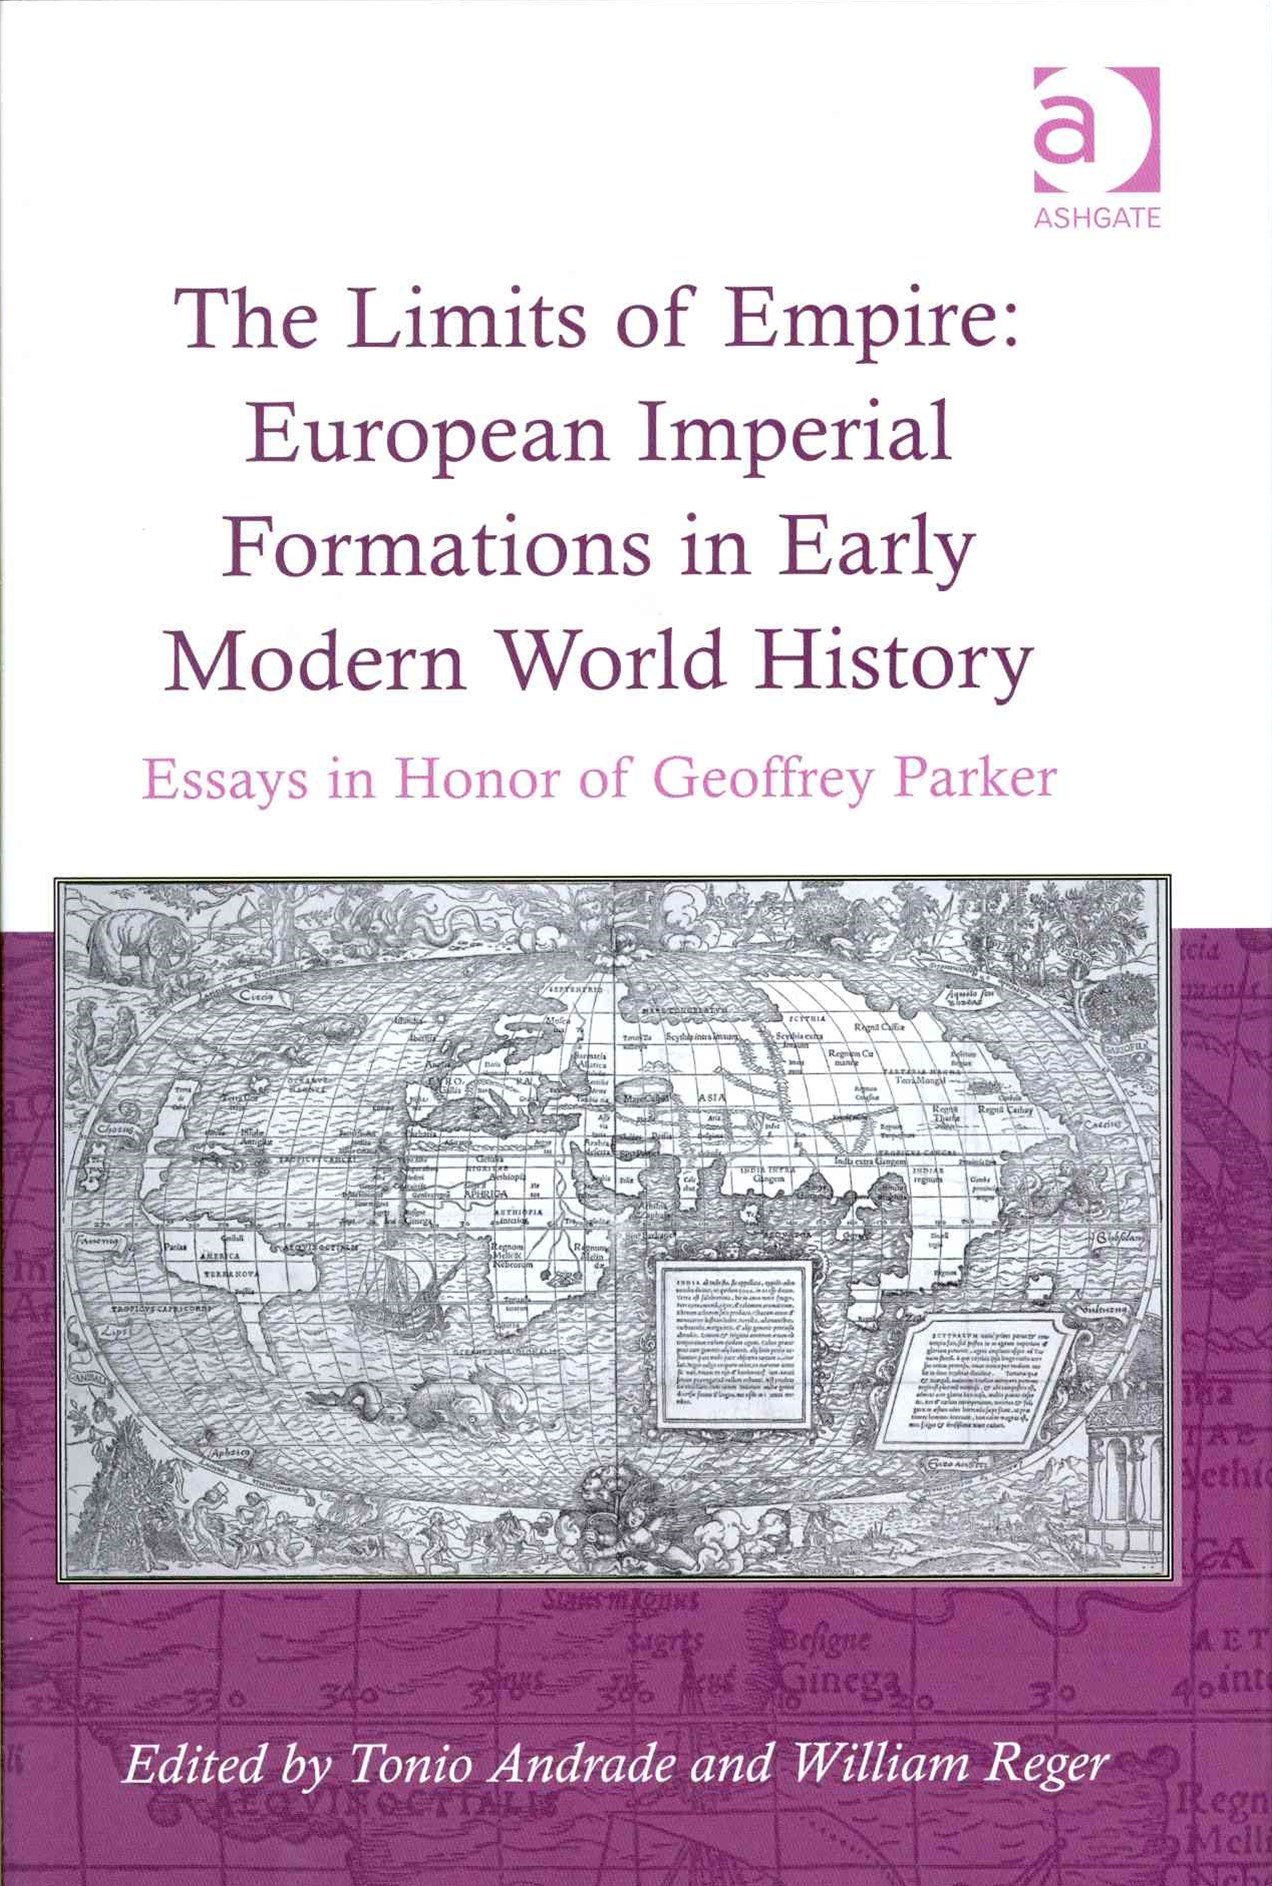 Limits of Empire: European Imperial Formations in Early Modern World History